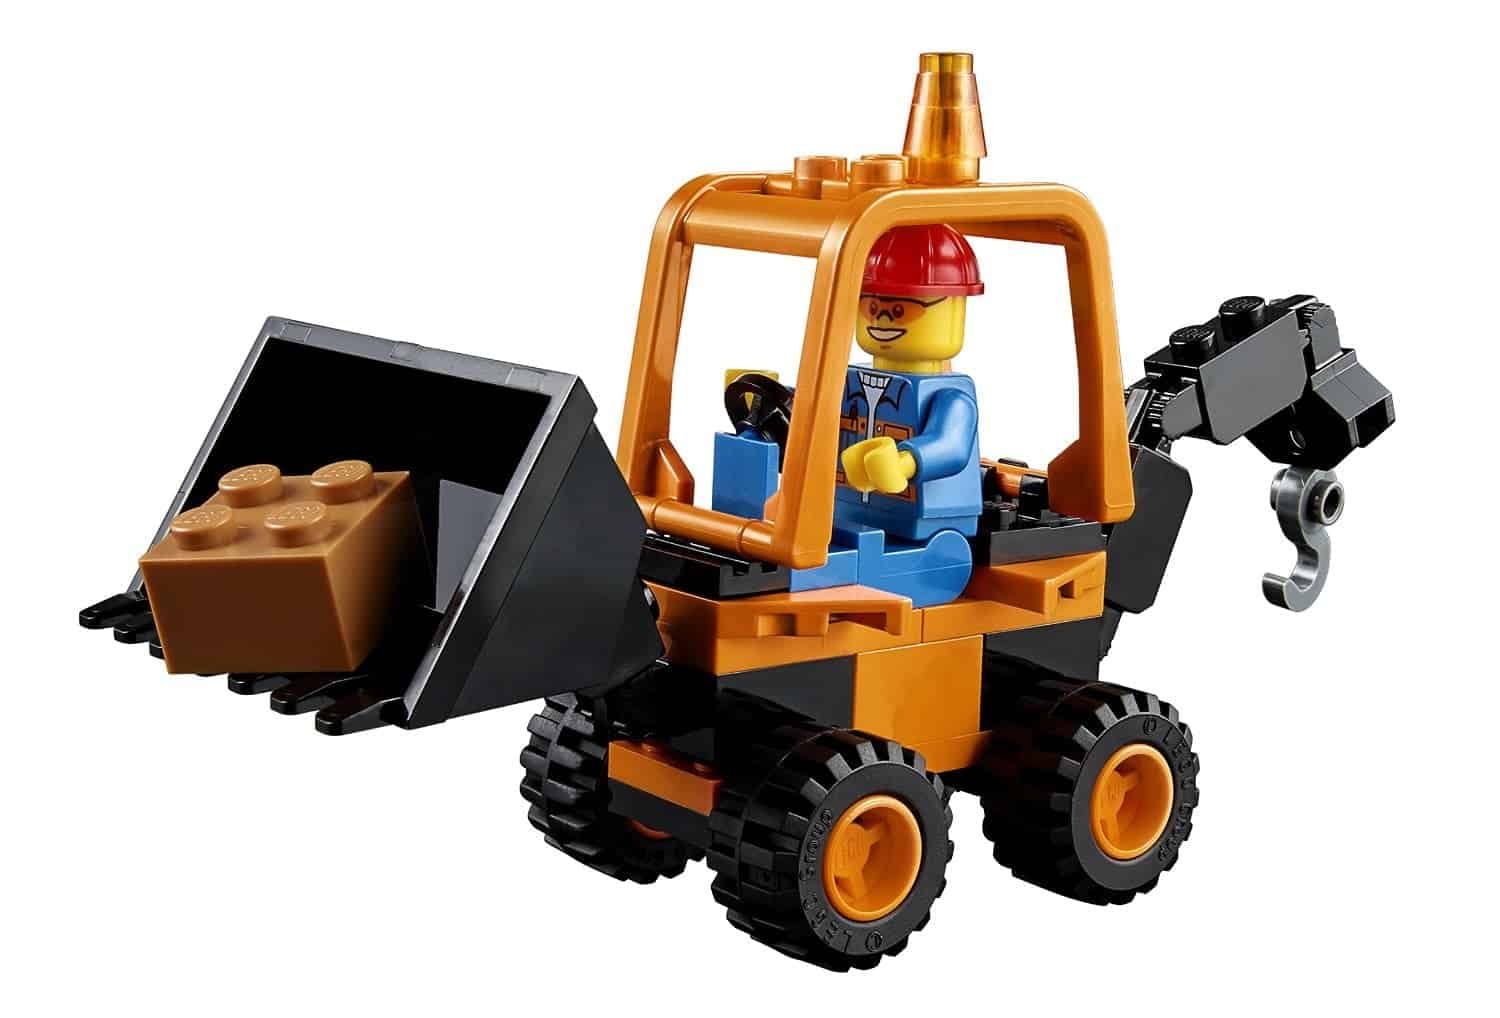 Lego Gift Ideas by Age - Toddler to Twelve Years: Work Truck | www.thepinningmama.com